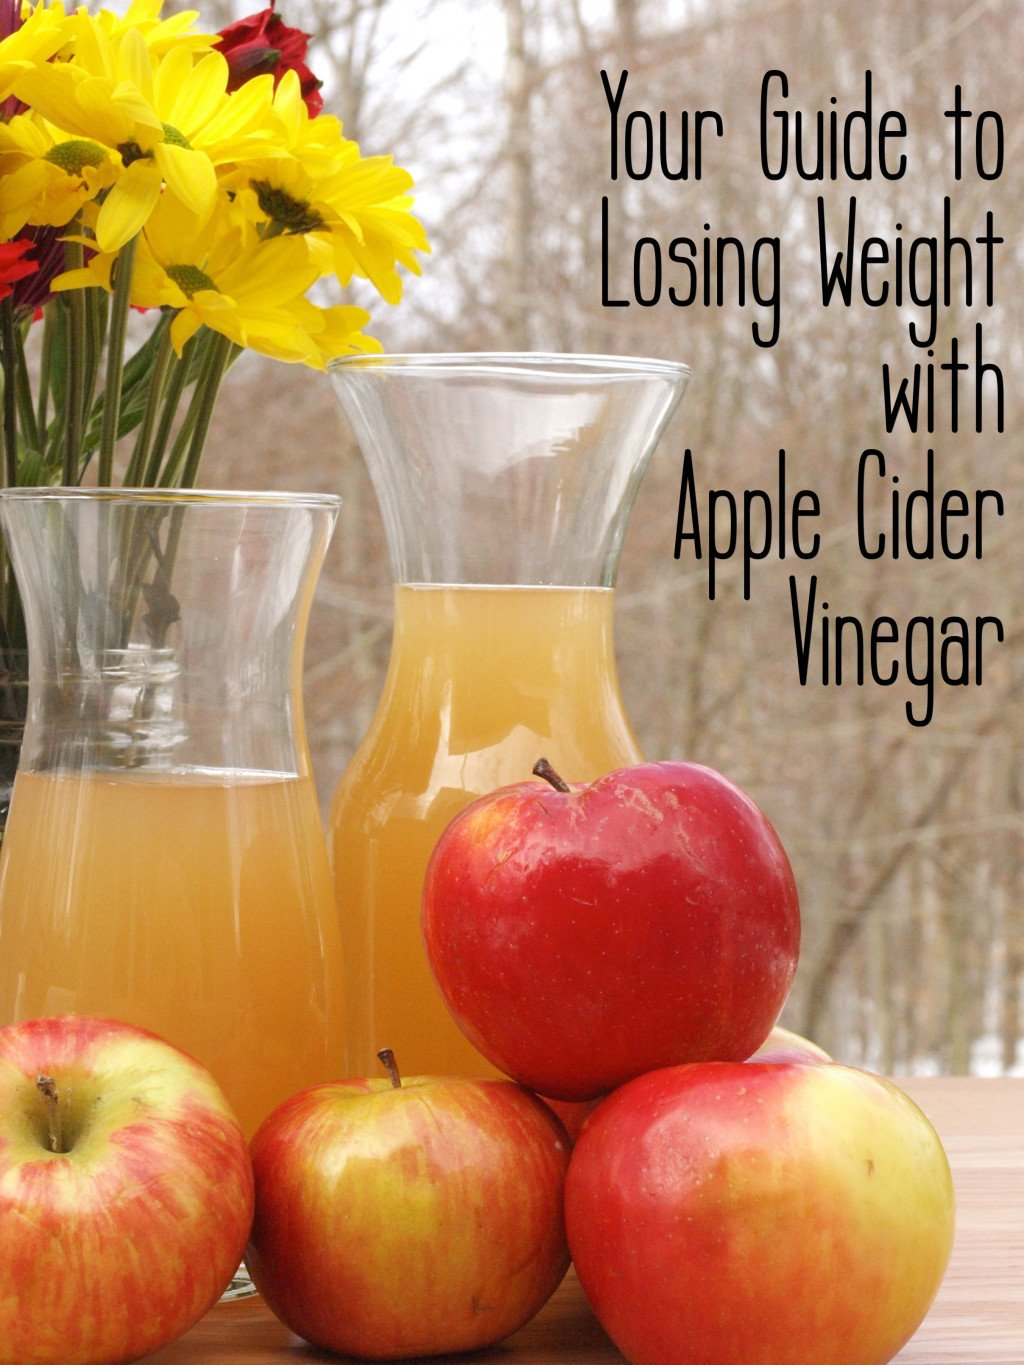 Does Apple Cider Vinegar Help With Weight Loss? | Time